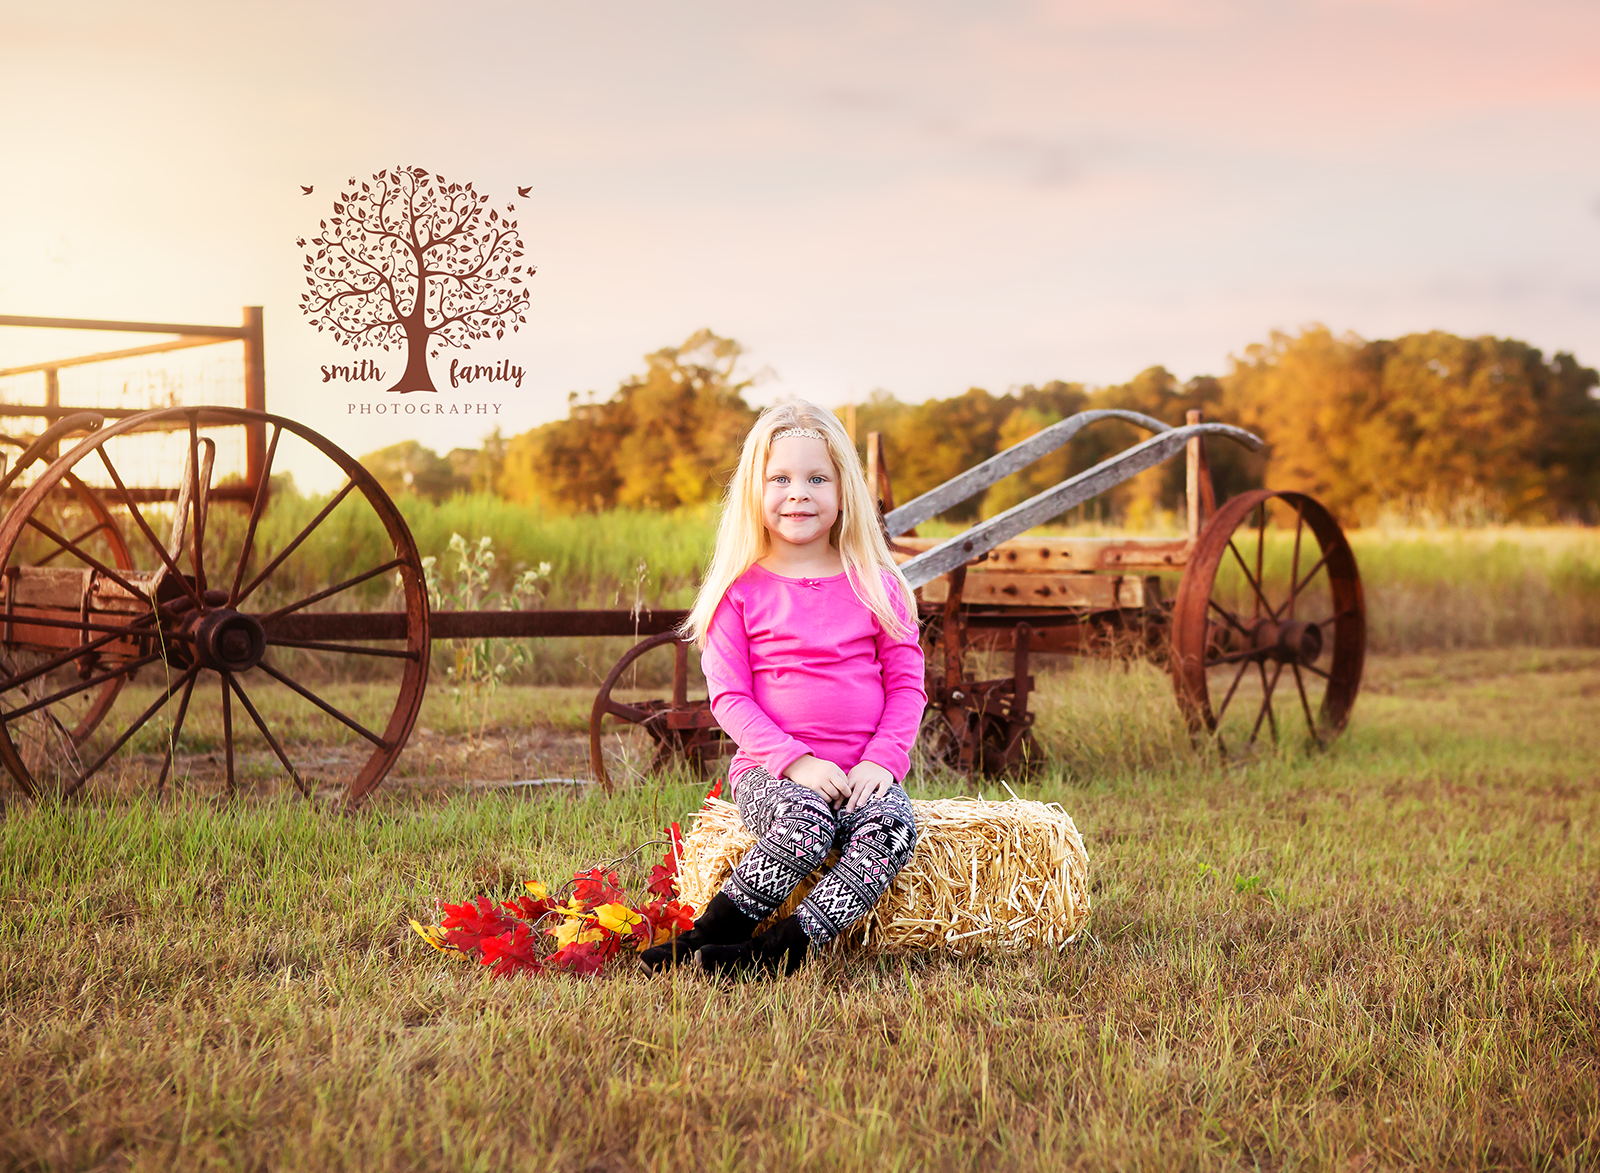 2017 - Family Session. For this session they ventured out to Limestone County for a rustic session at the family ranch.